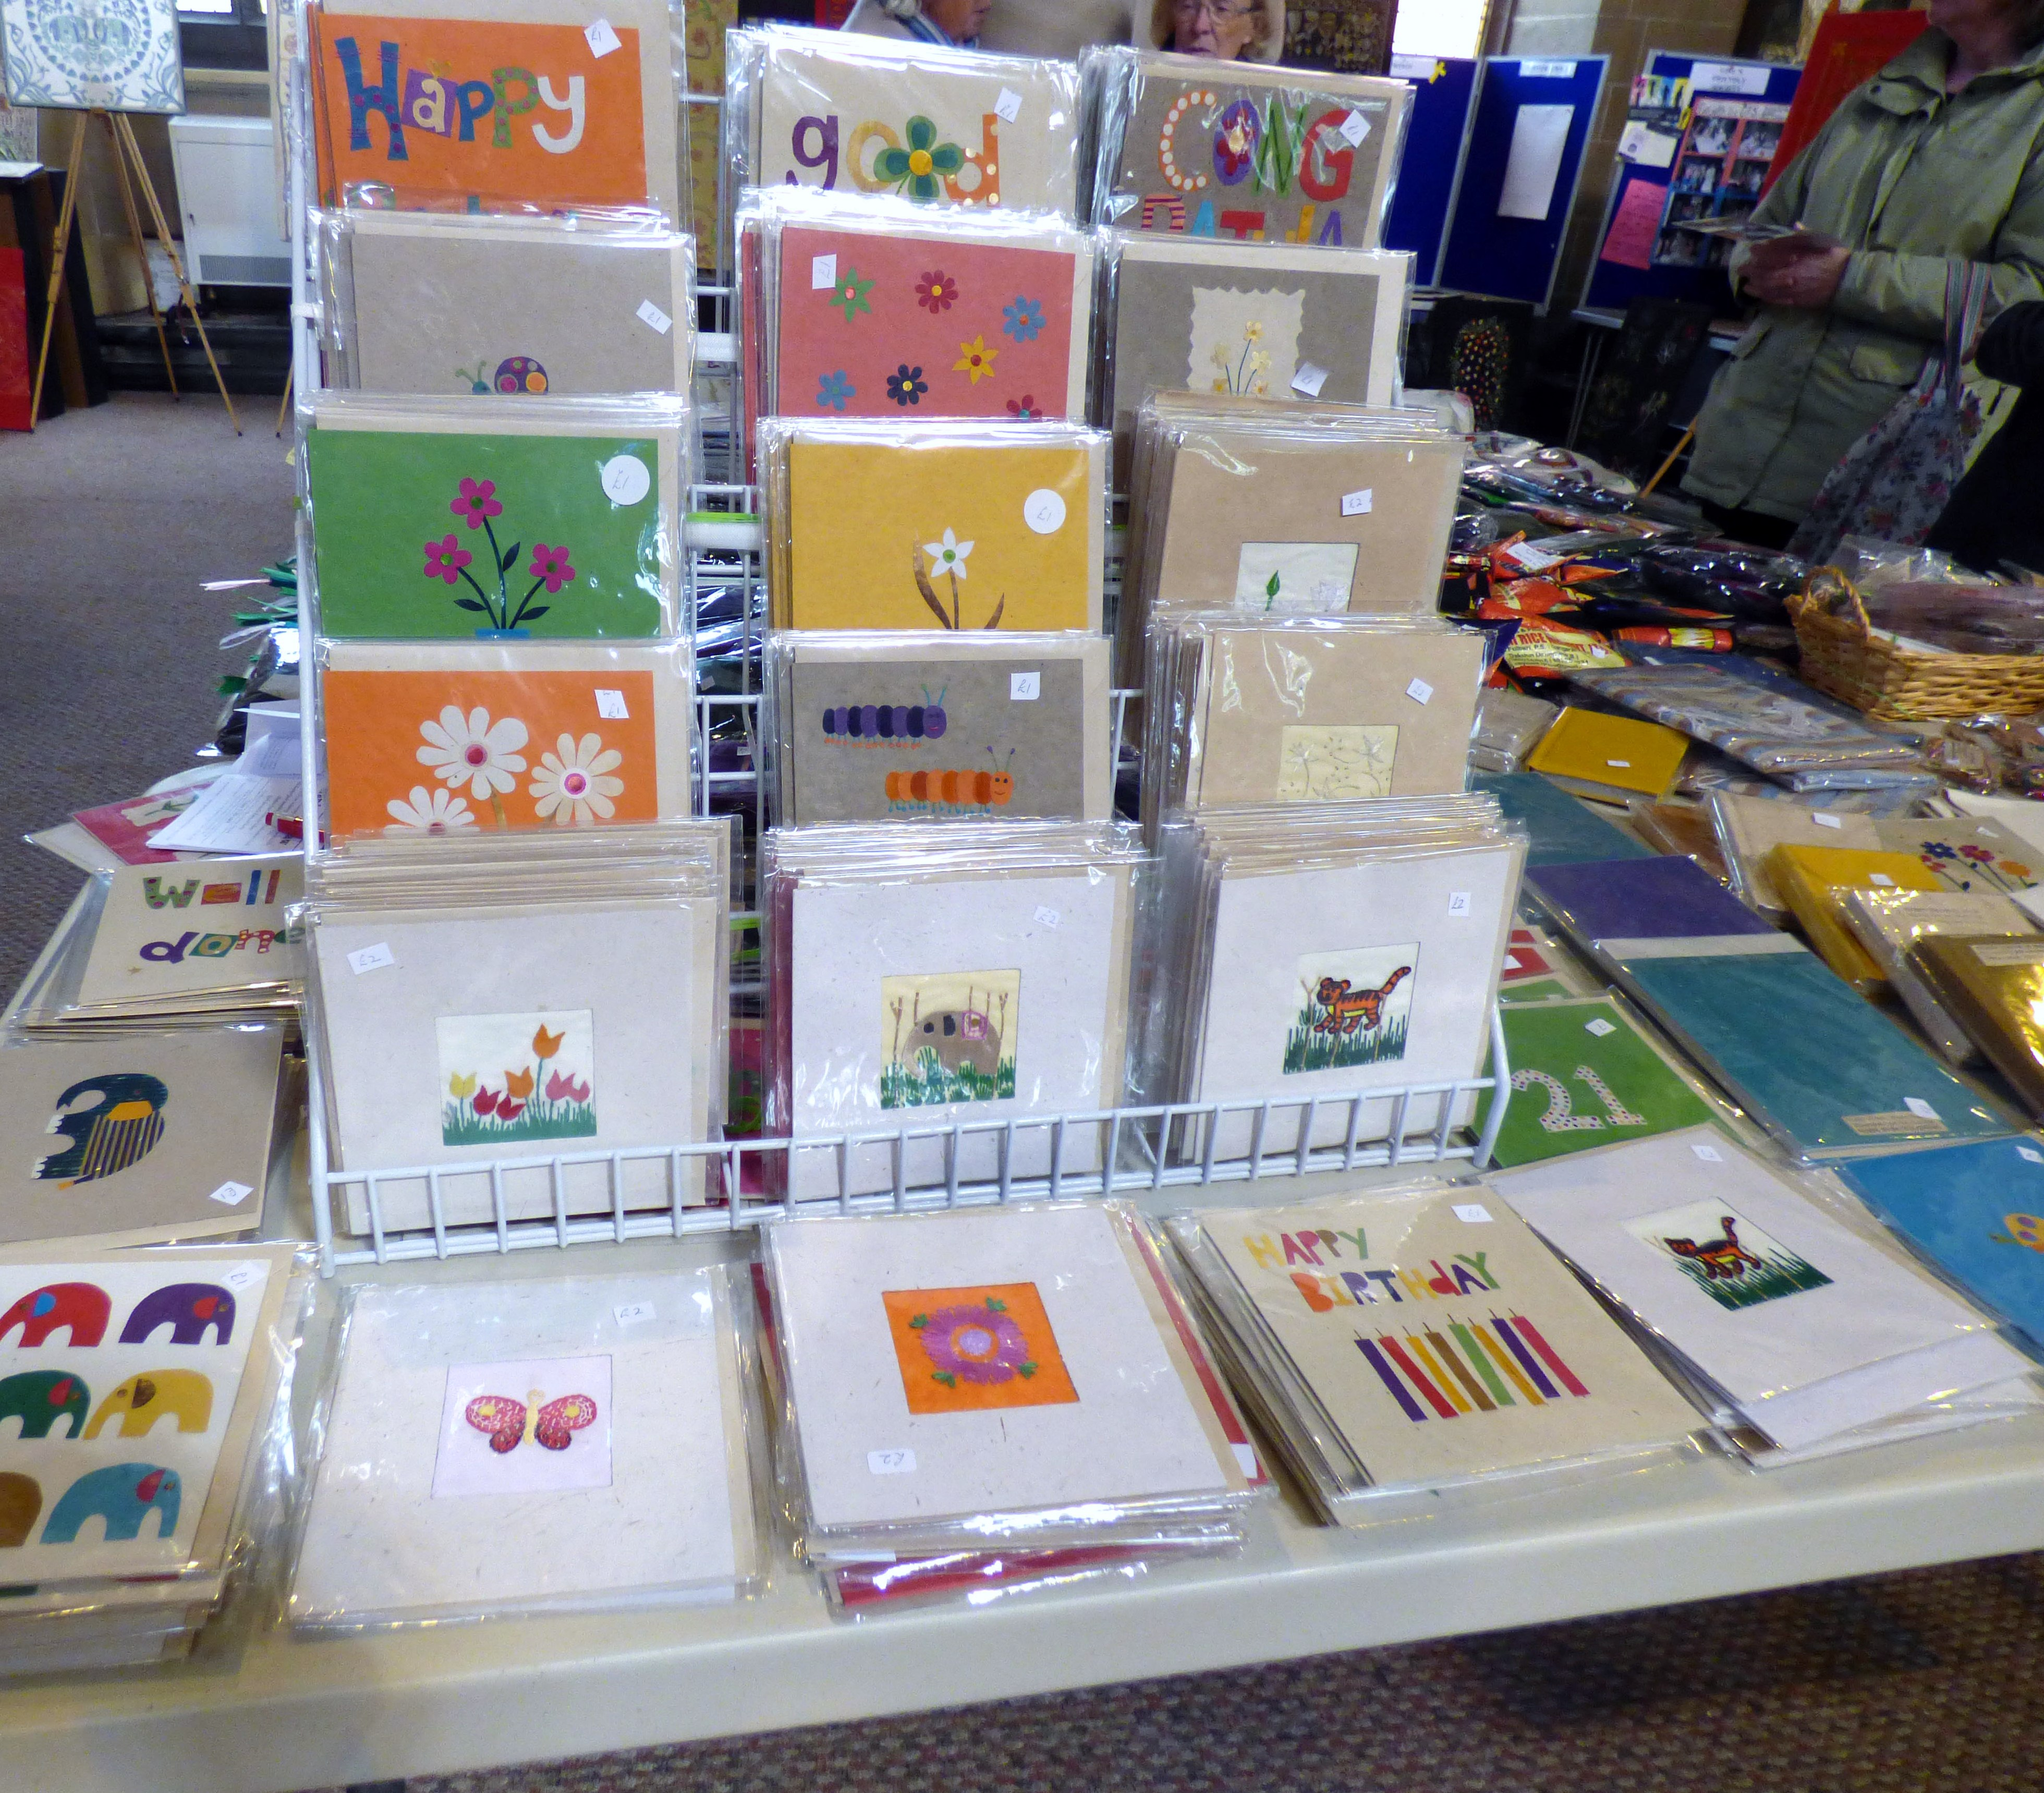 handmade cards for sale at Sreepur stall in St Barnabus, April 2016